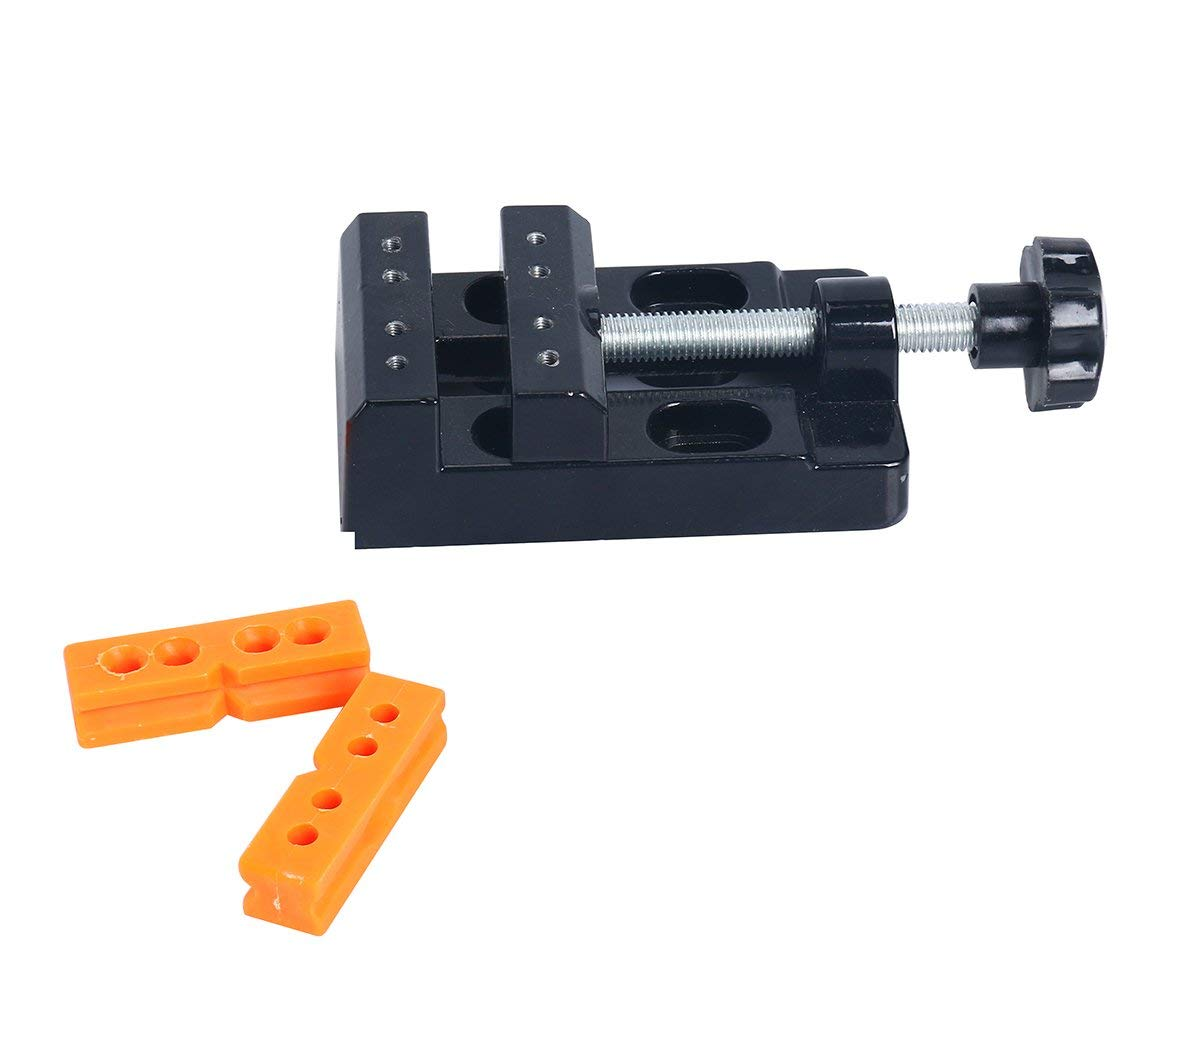 Milelake mini flat clamp table jaw bench clamp drill press vise